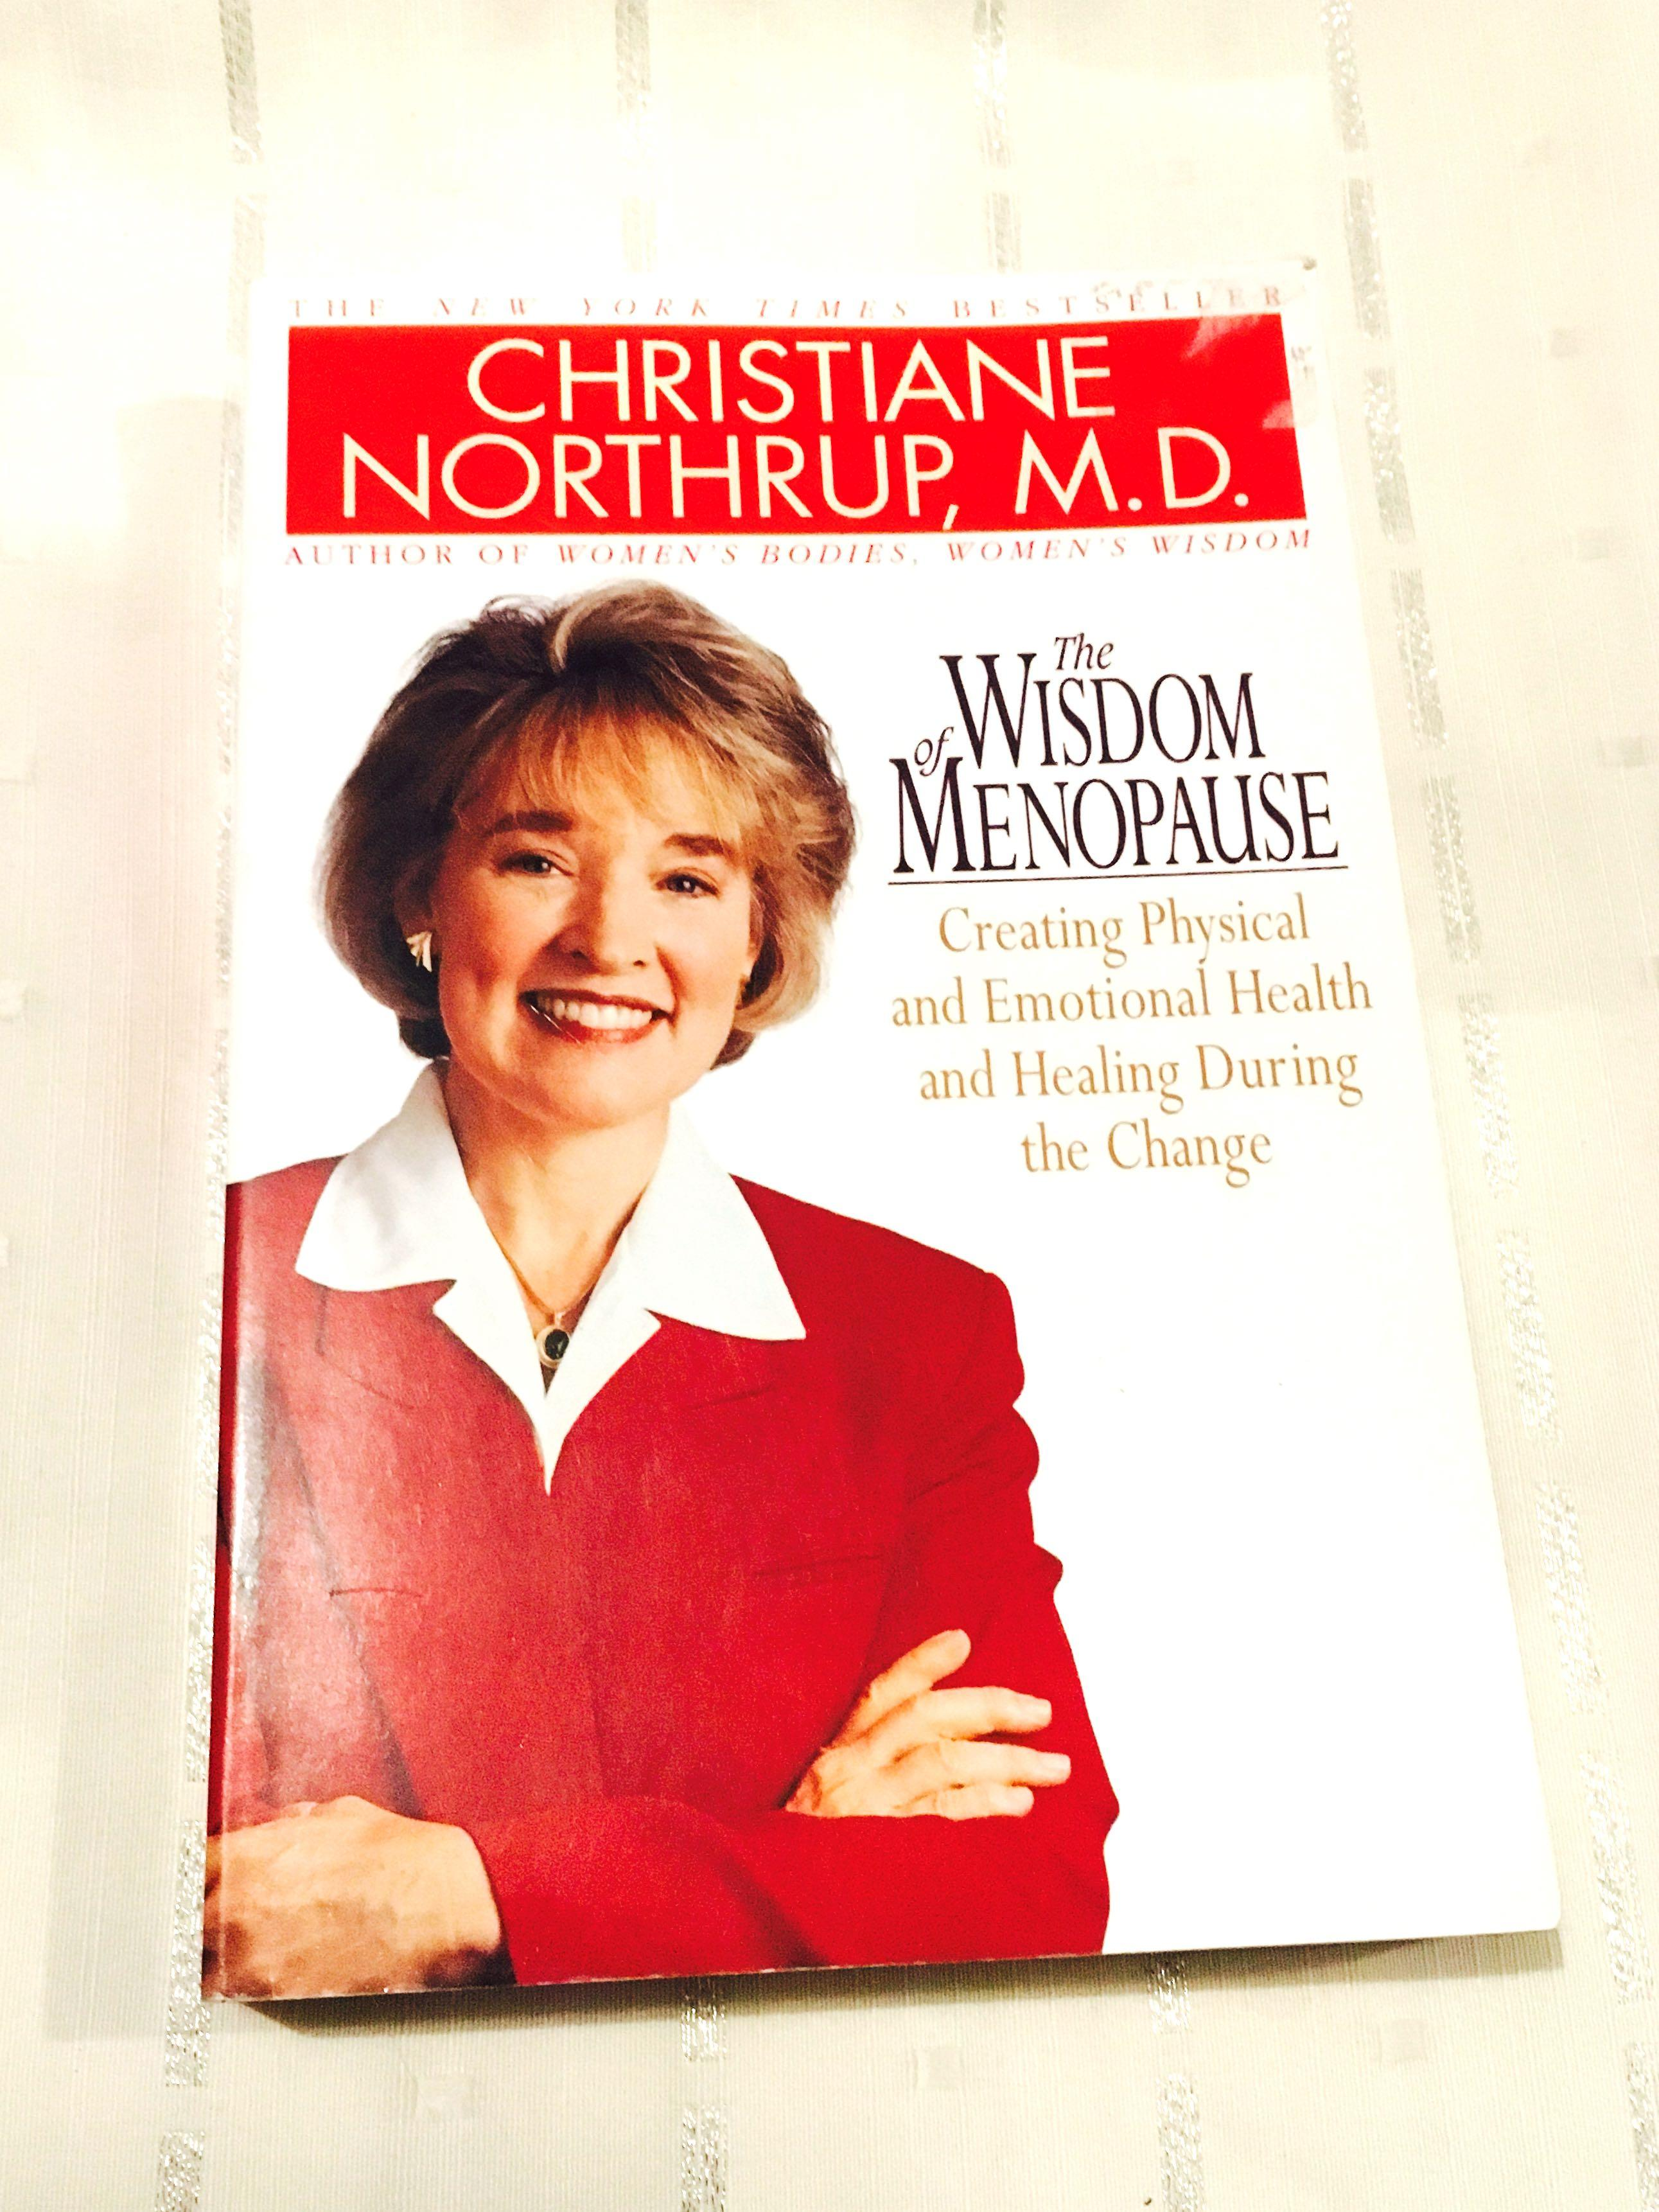 The Wisdom of Menopause by Christiane Northup MD Book